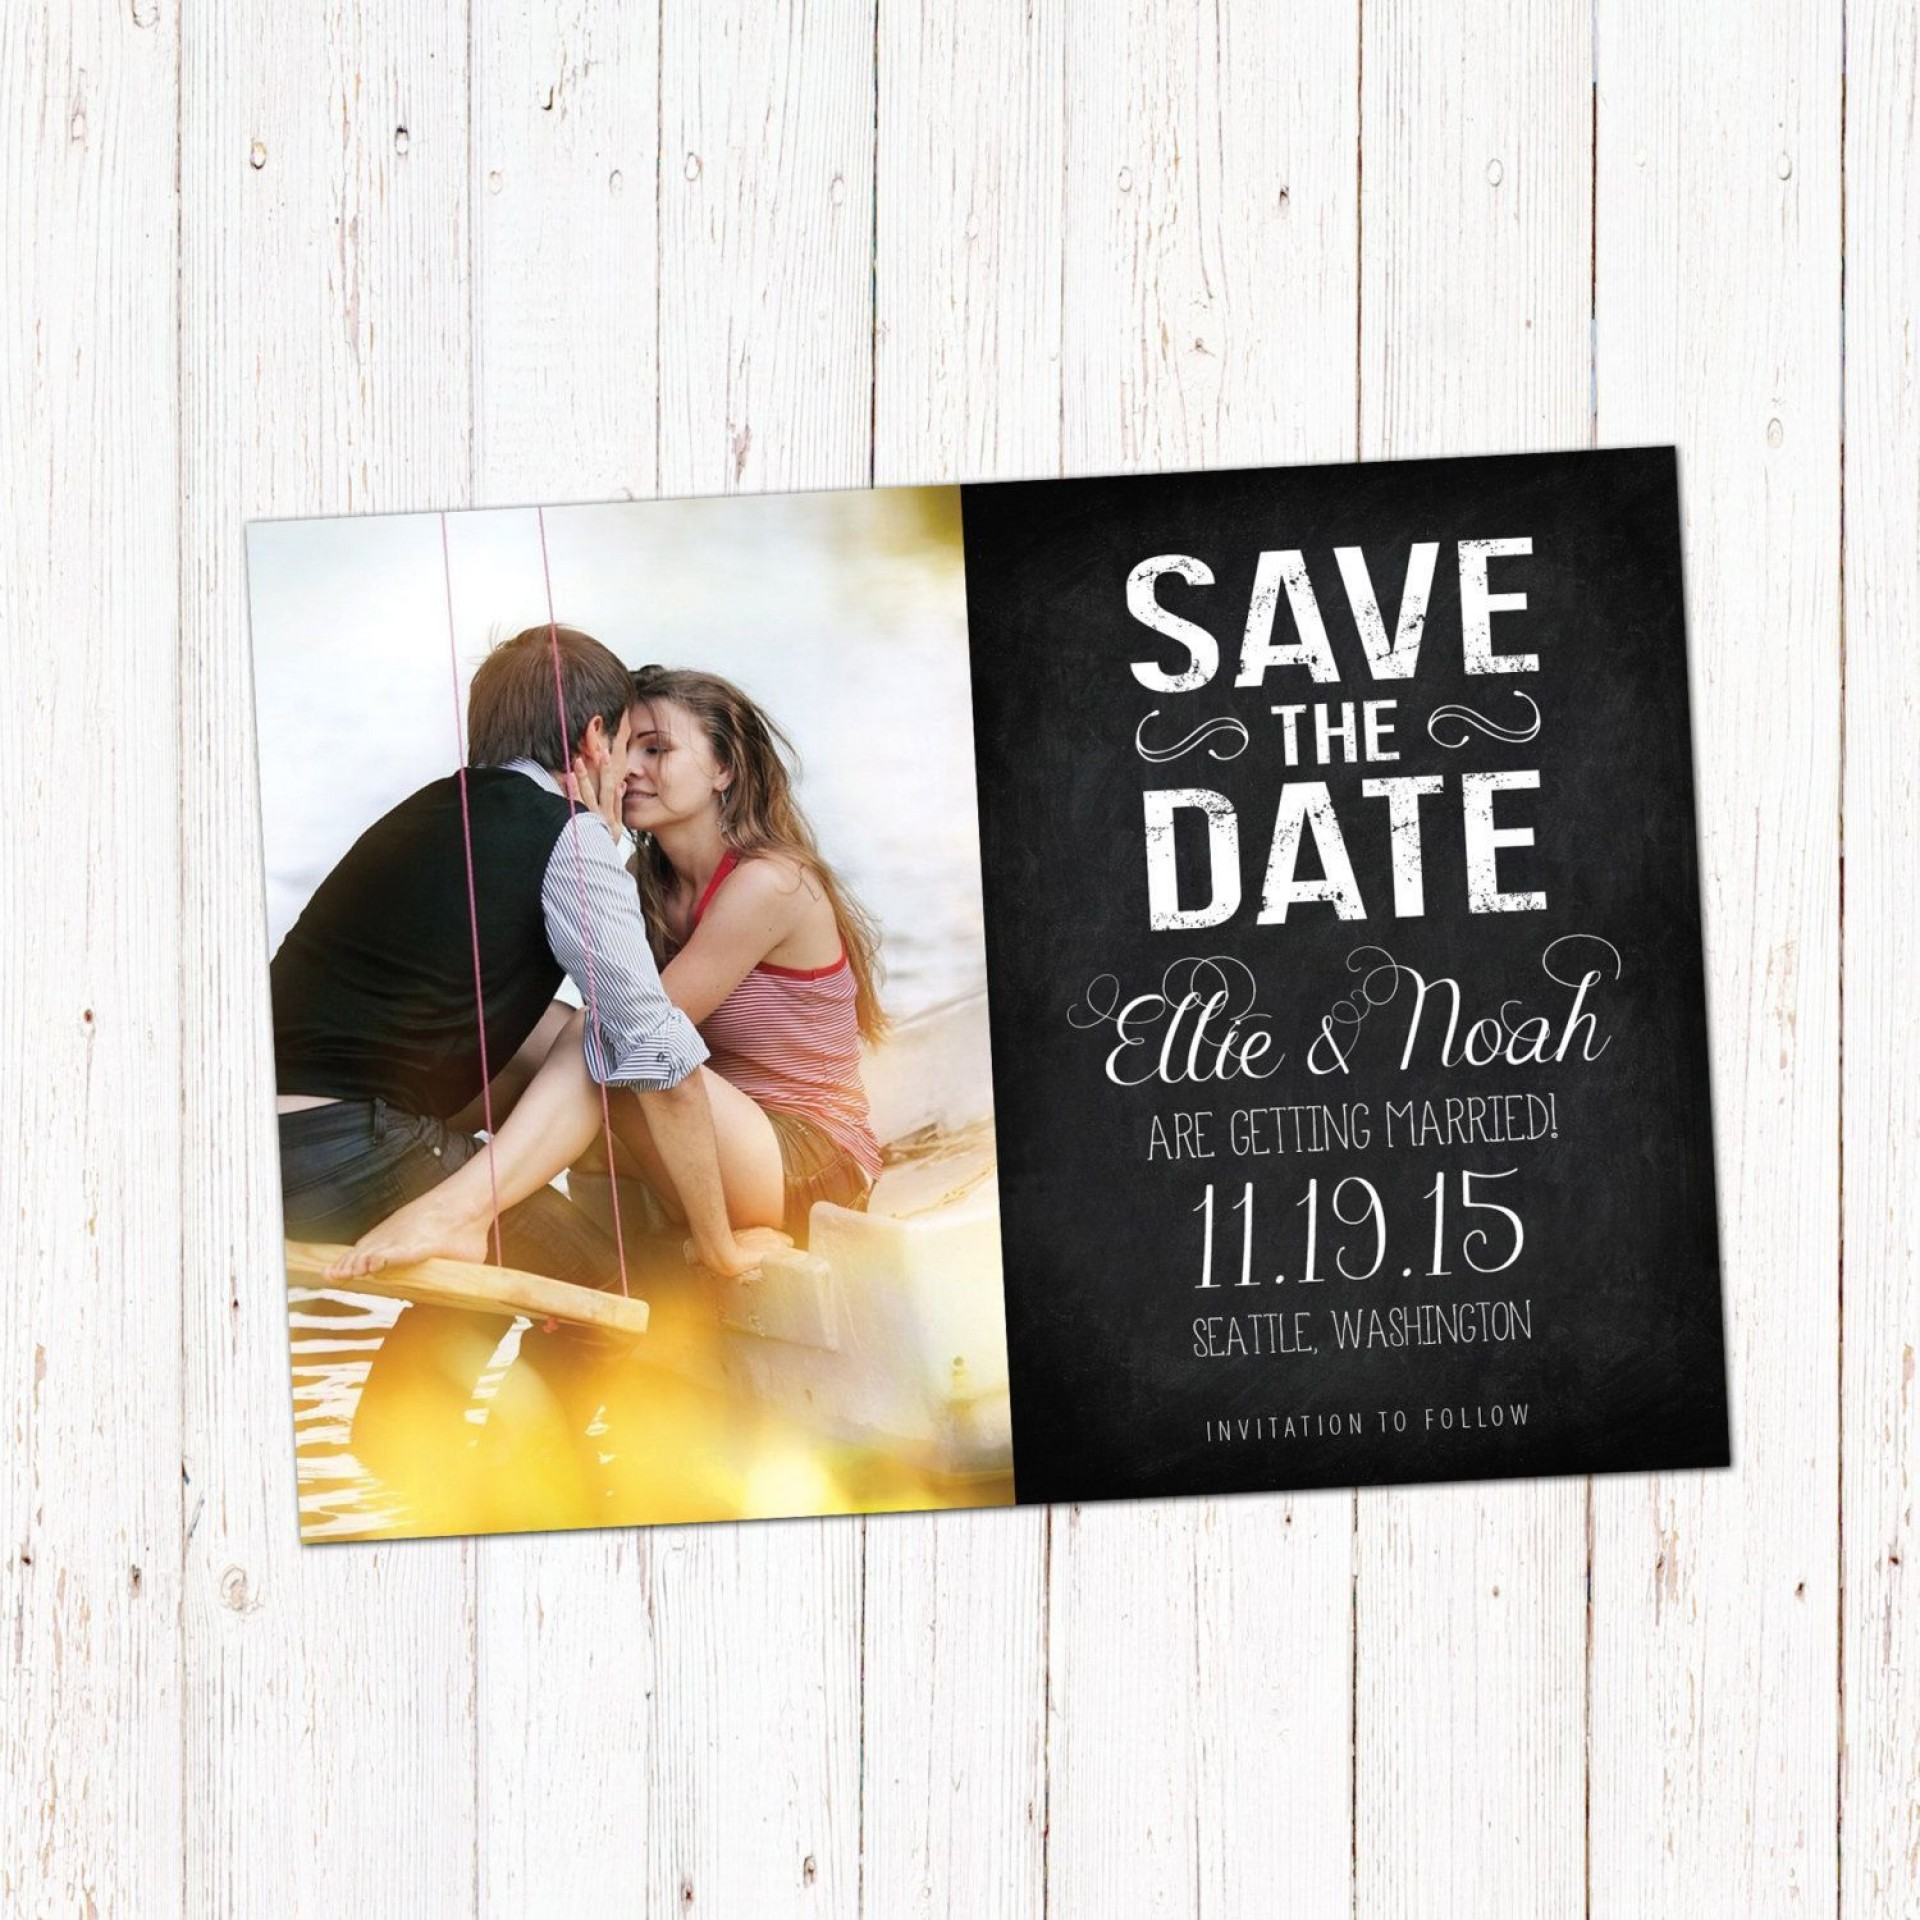 001 Amazing Save The Date Template Photoshop Picture  Adobe Card1920